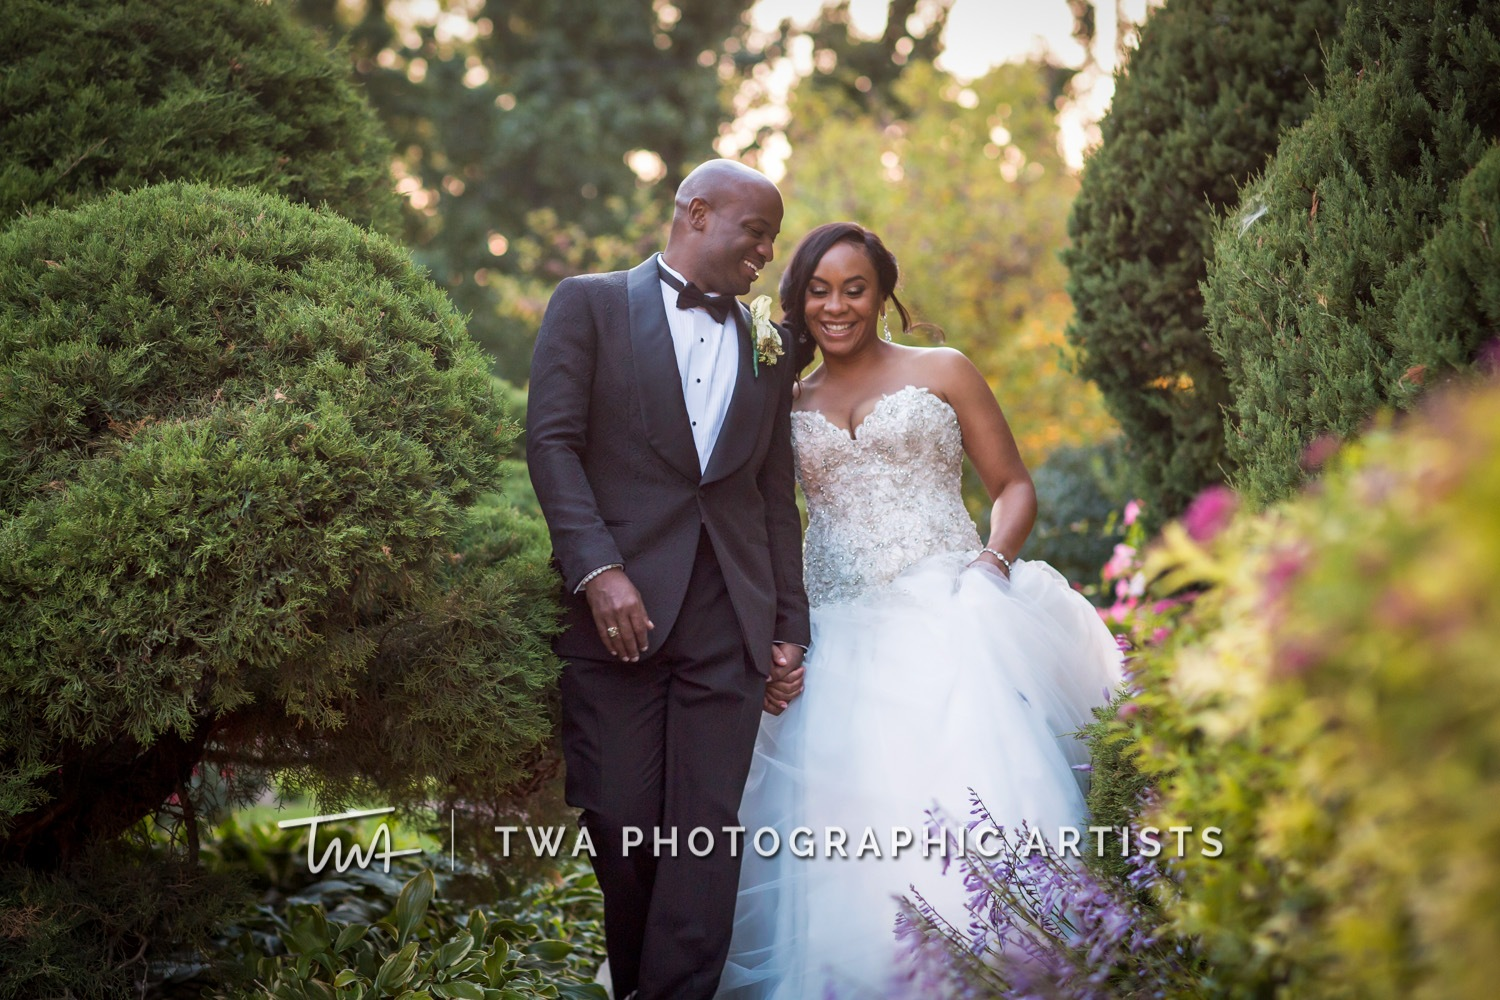 Chicago-Wedding-Photographer-TWA-Photographic-Artists-Haley-Mansion_Graves_Moffett_JM-15-0484